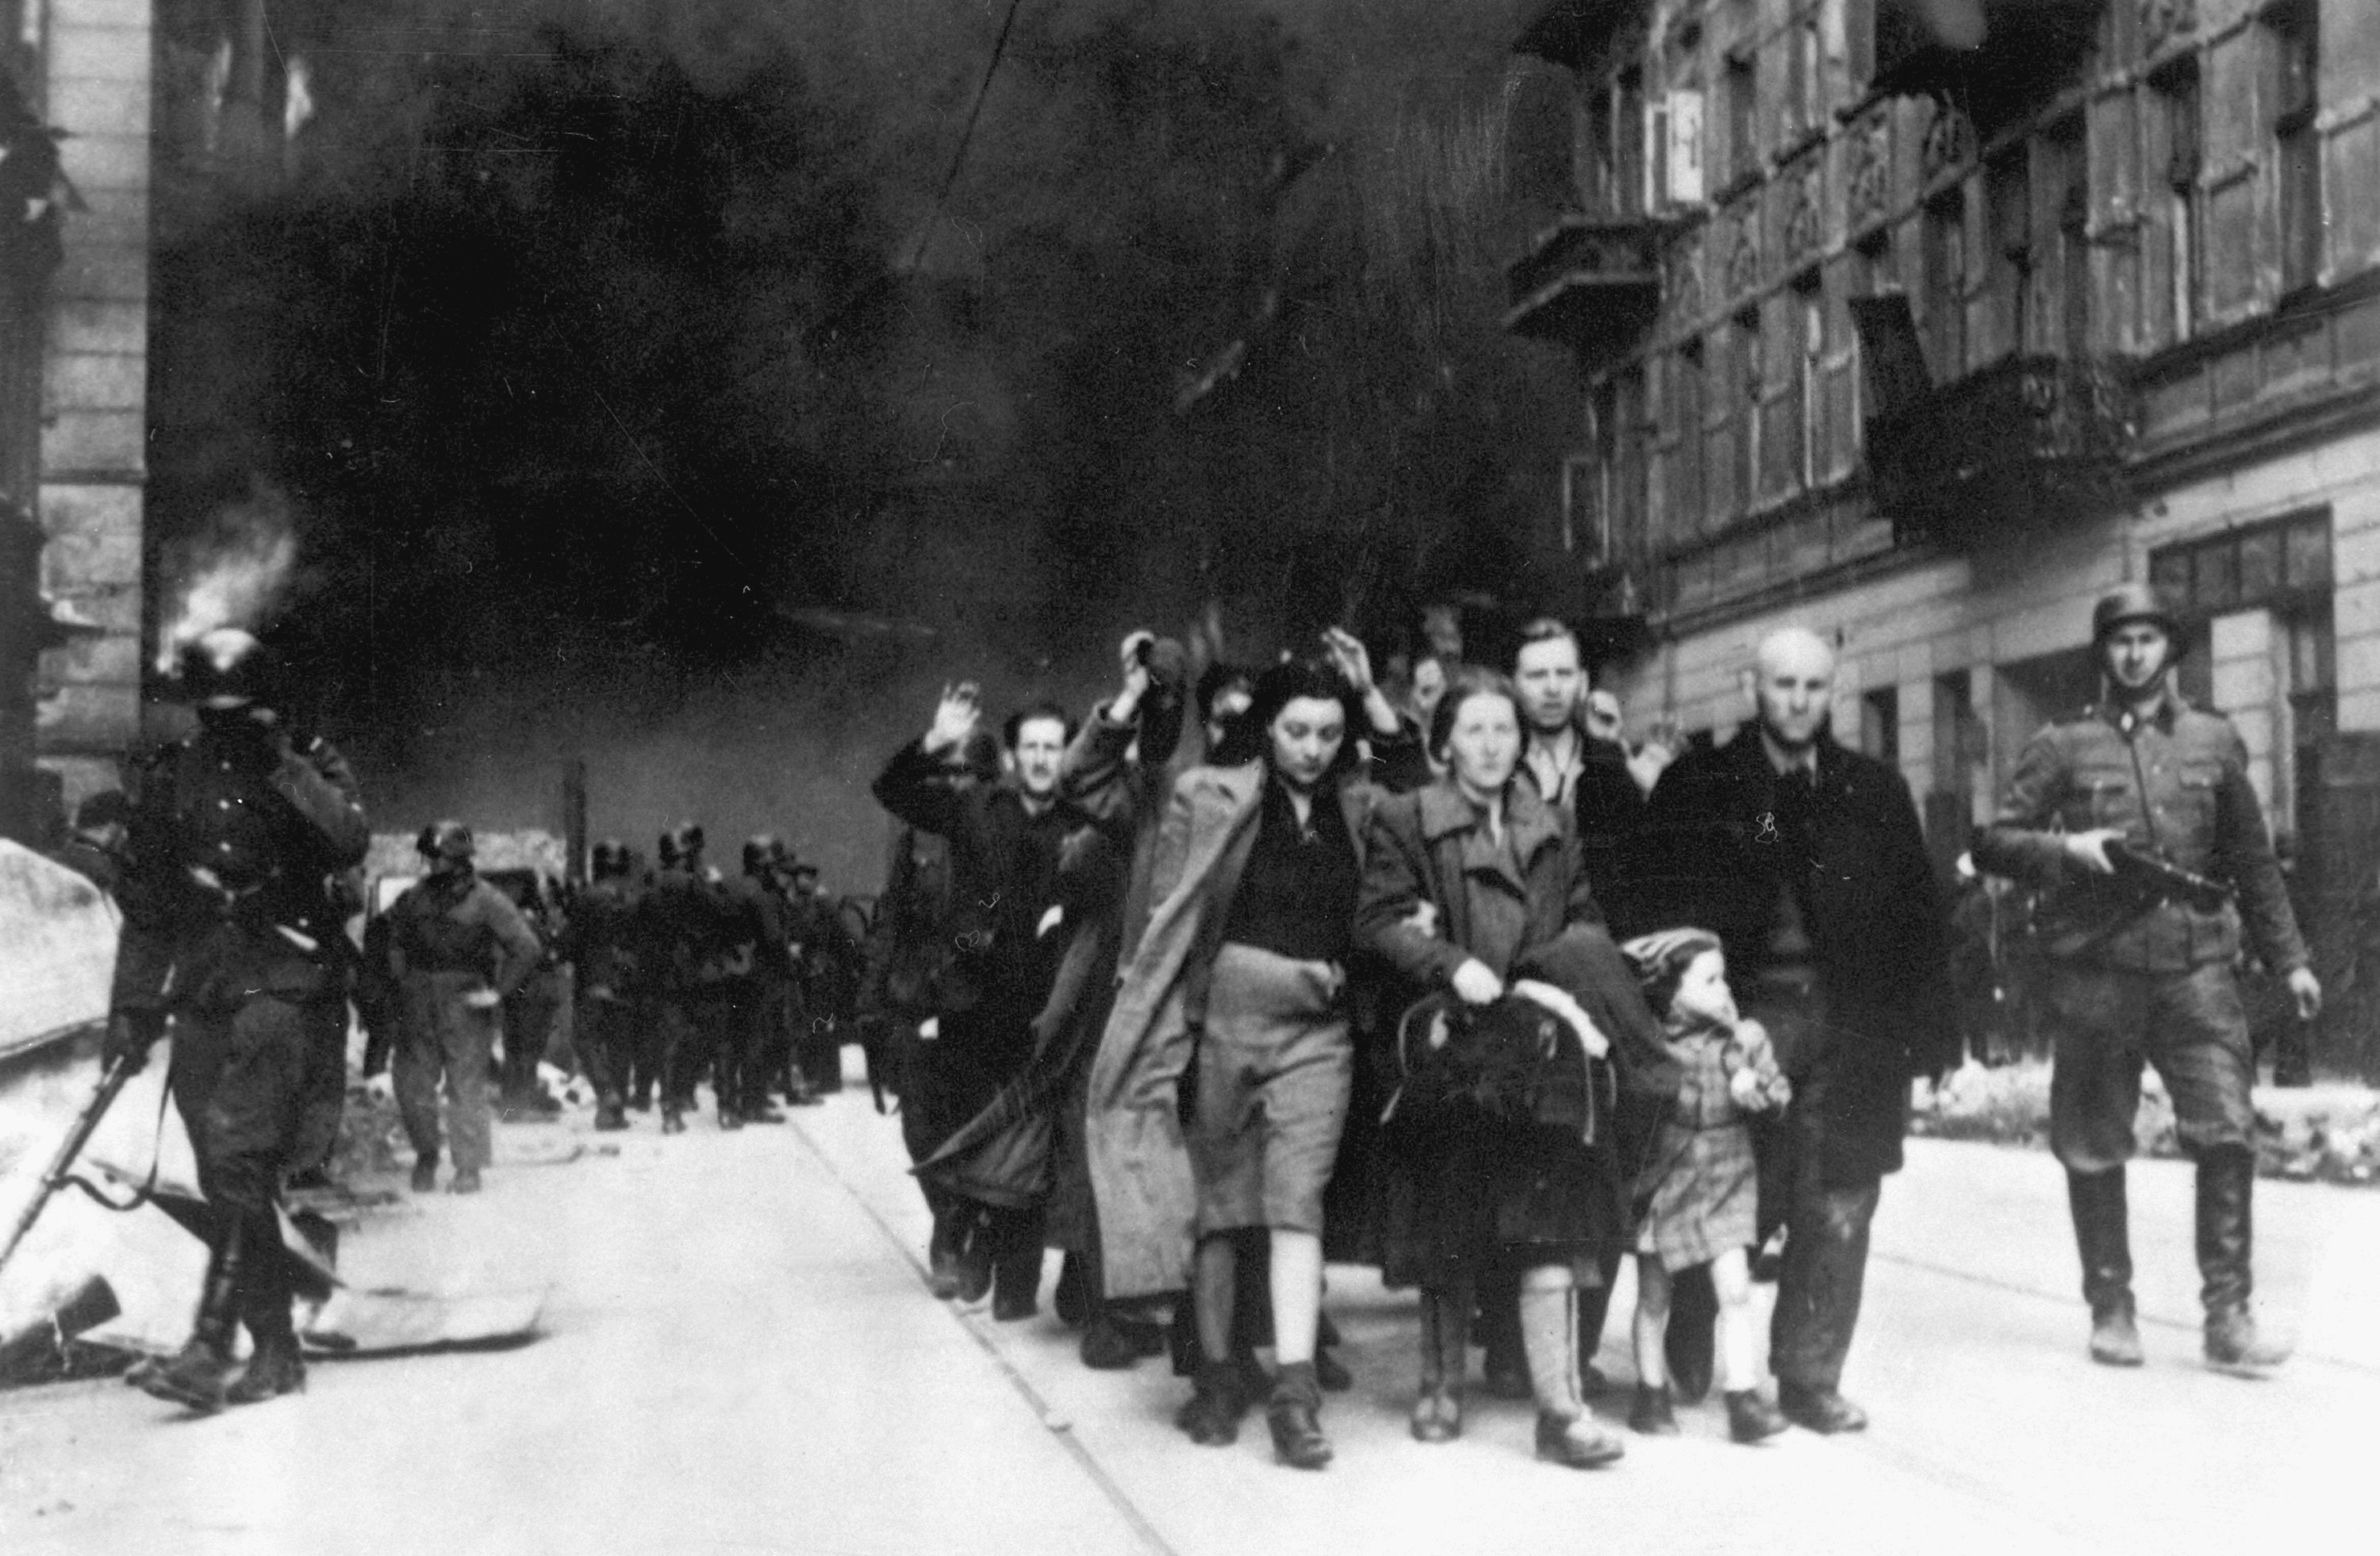 Jews in the Warsaw Ghetto are lead to a deportation point sometime between April 19 and May 16, 1943. Wikipedia.